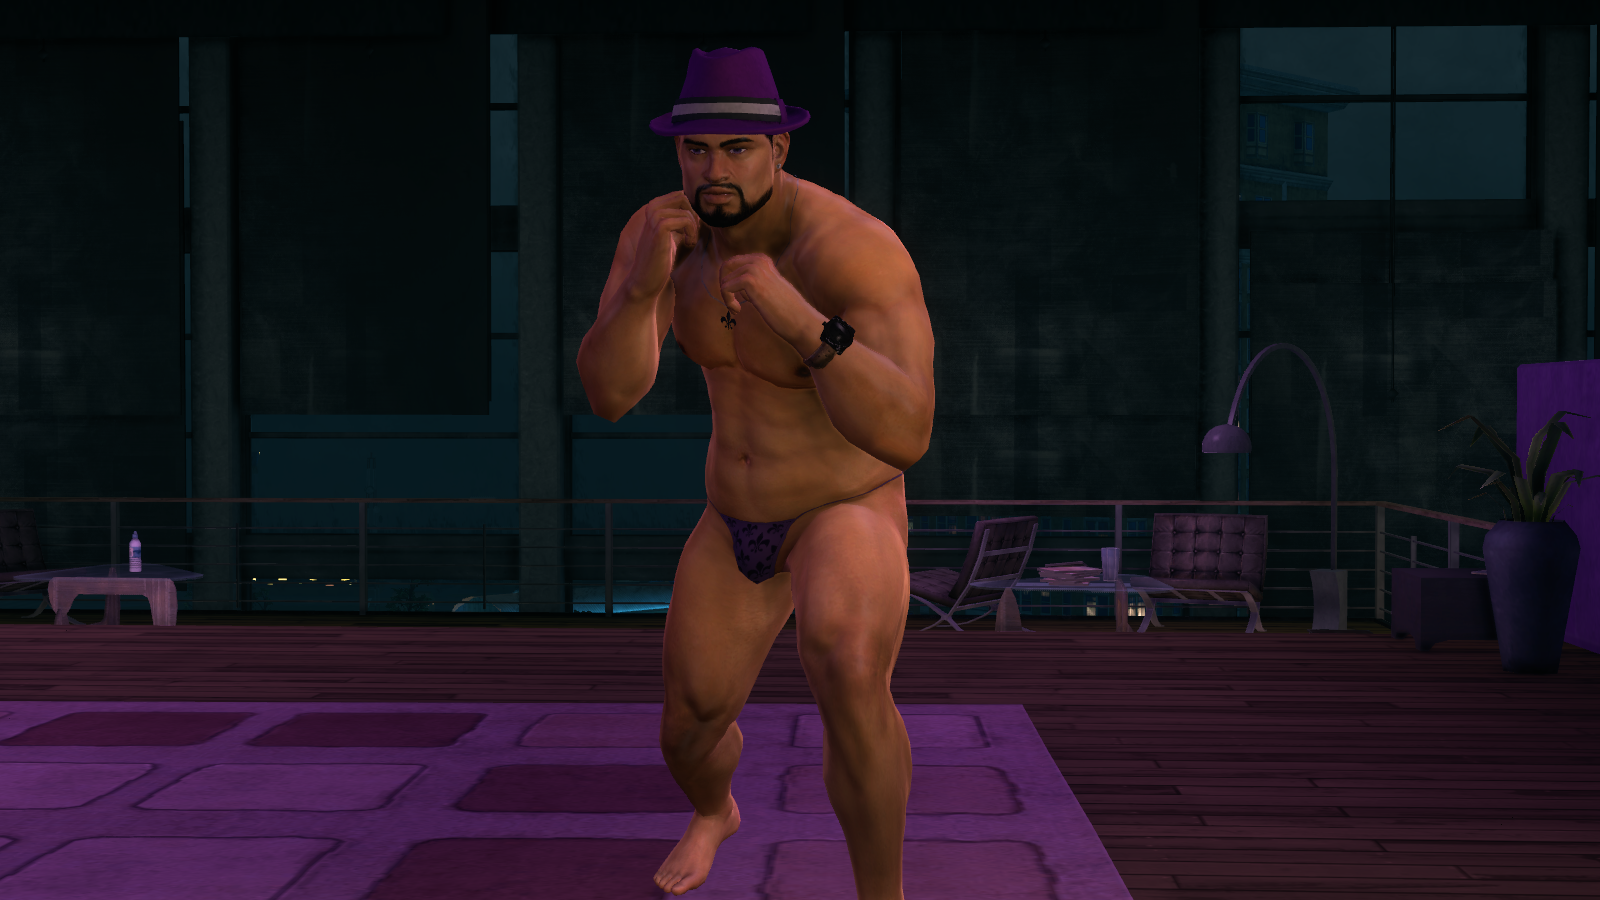 Naked stripper cheat saints row 2